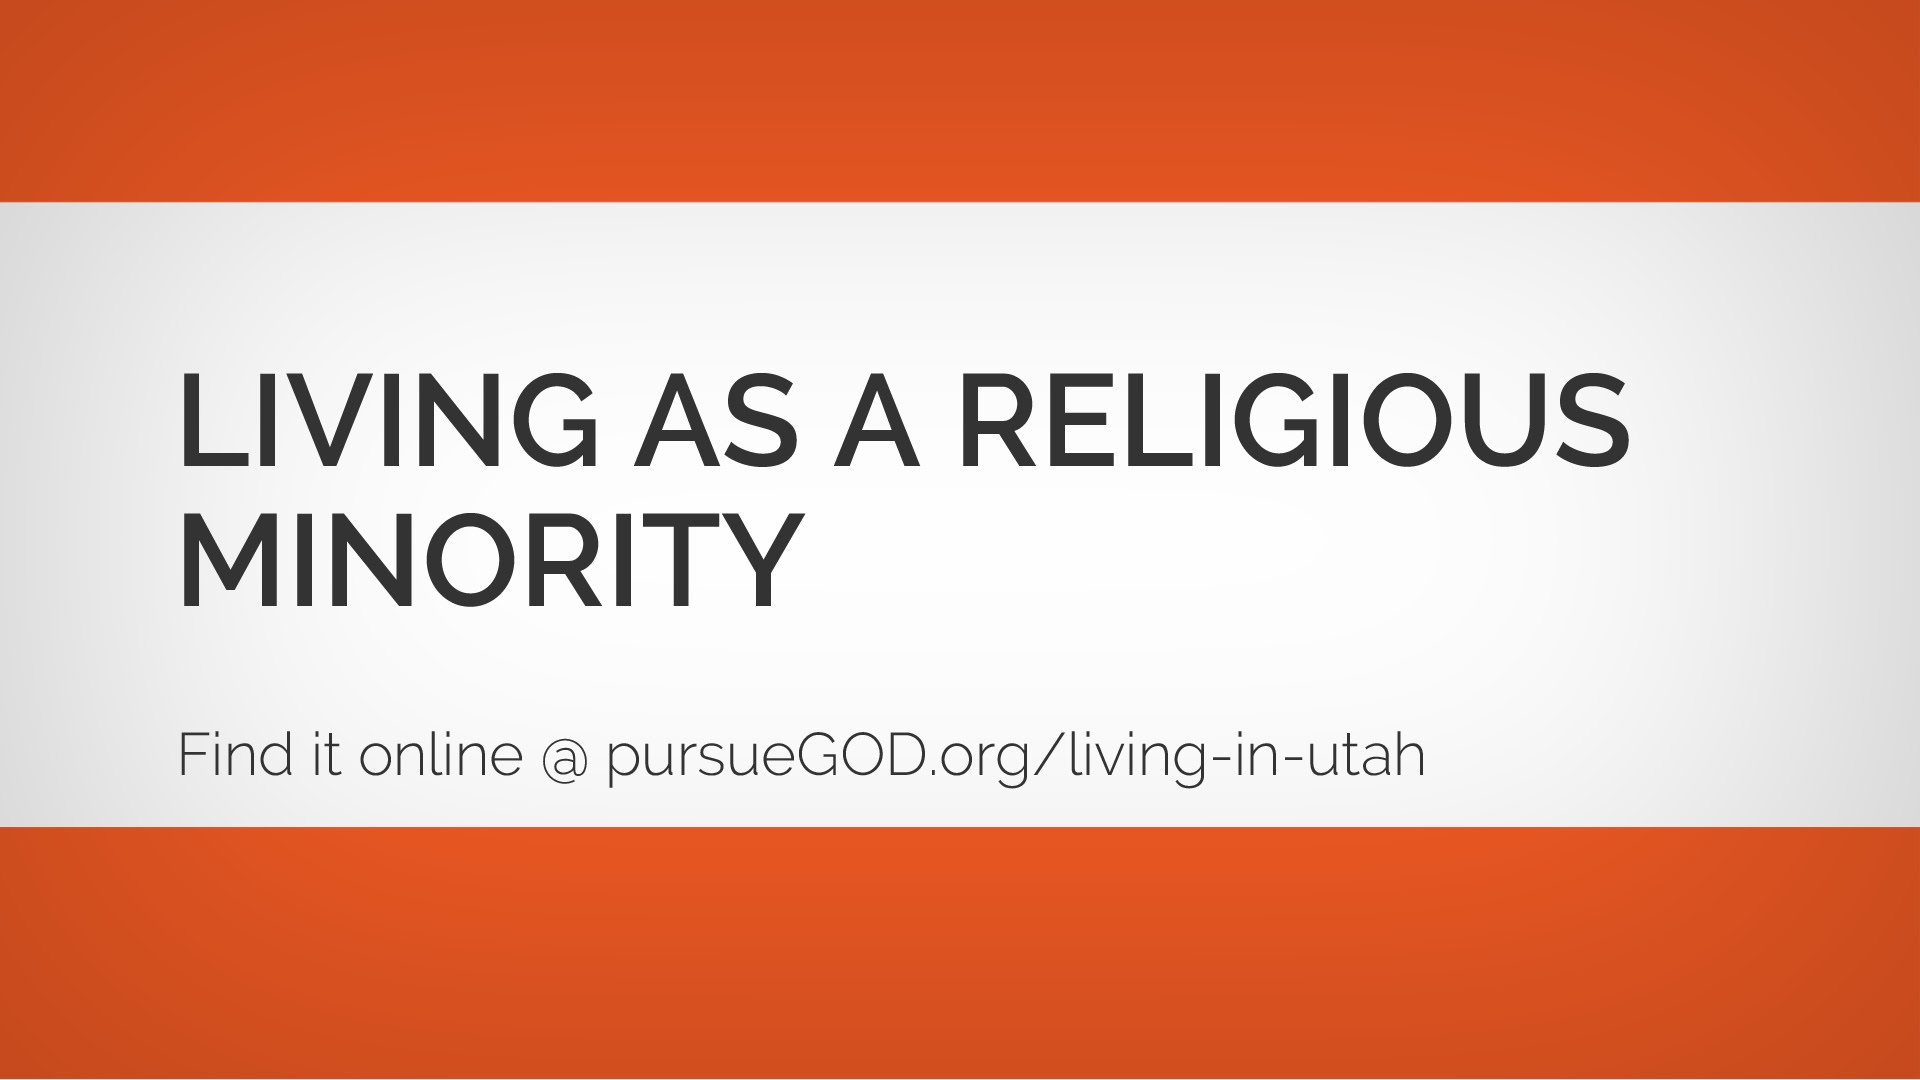 Living as a Religious Minority